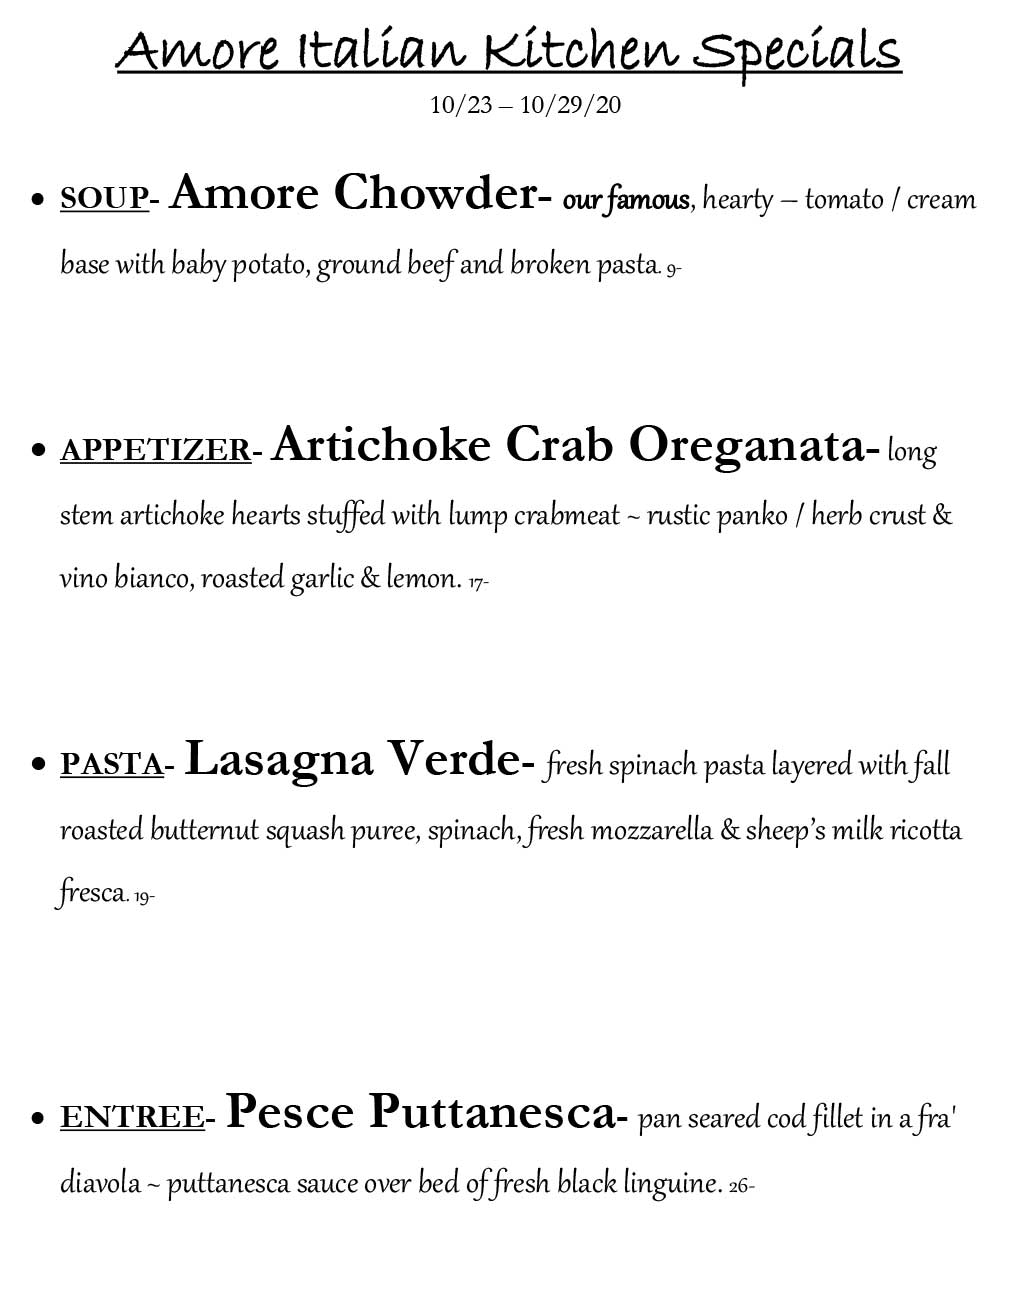 amore weekly specials from 10/23-10/29